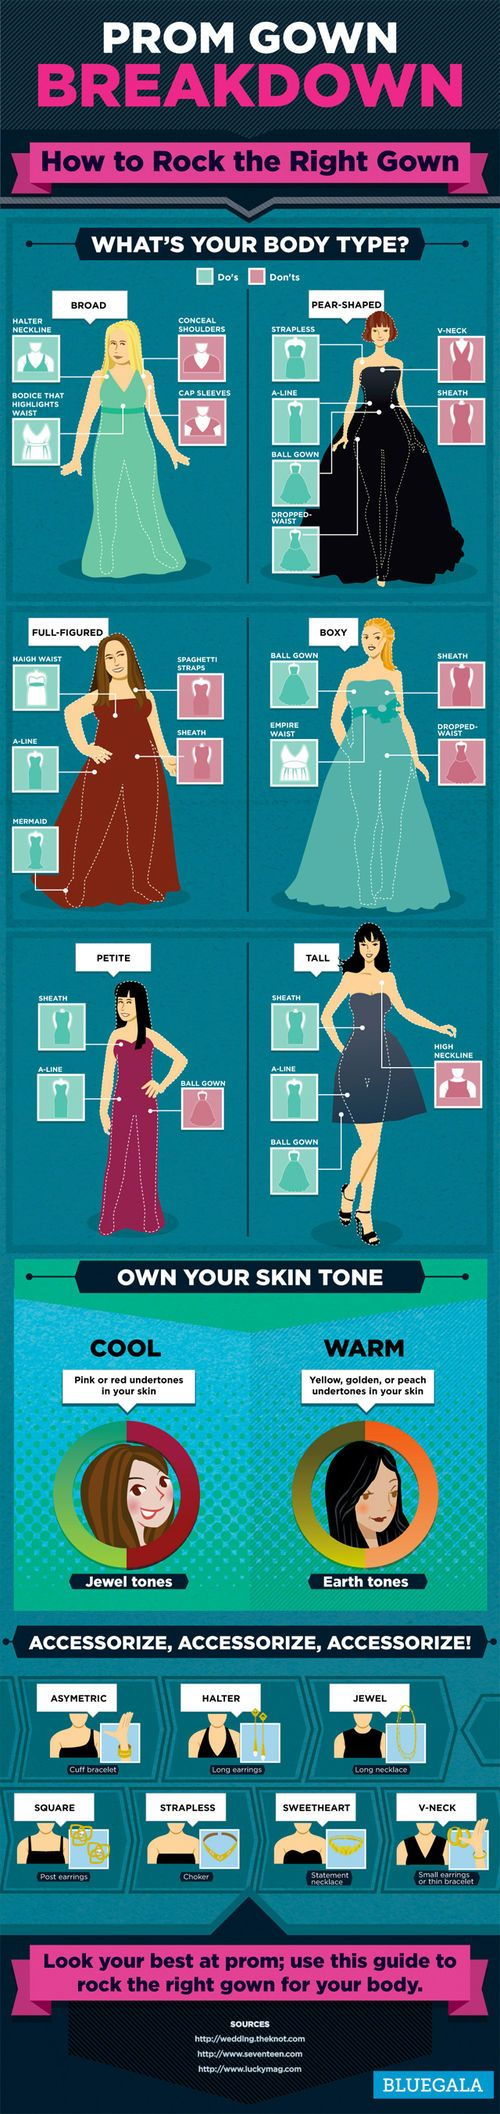 How to Rock the Right Gown